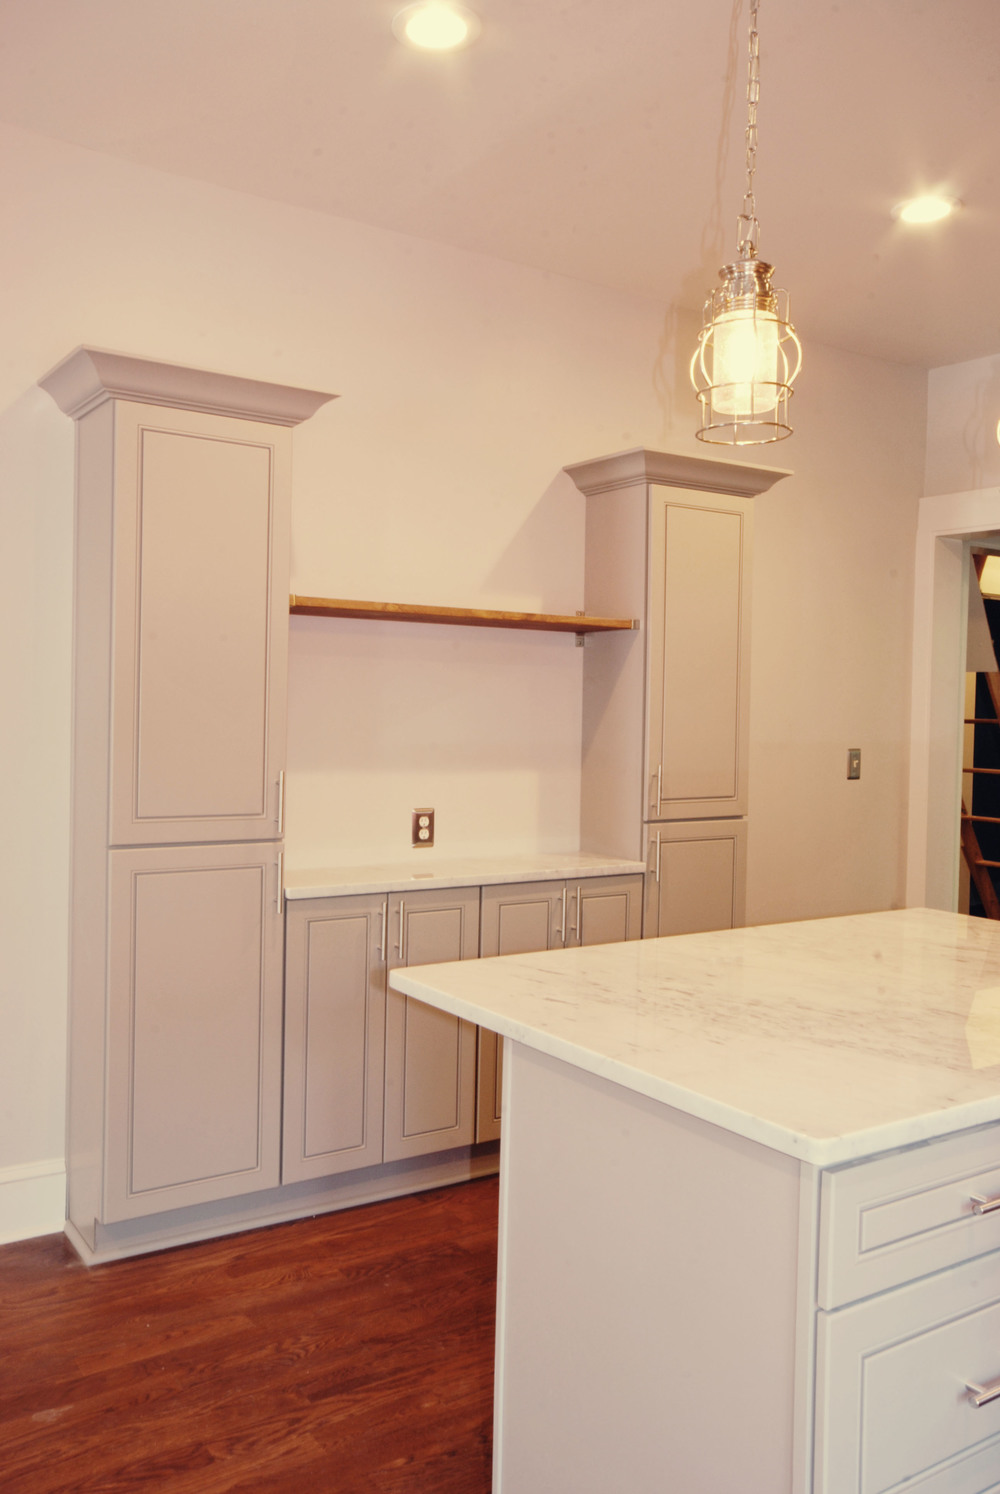 kitchen remodel via Drum Homes